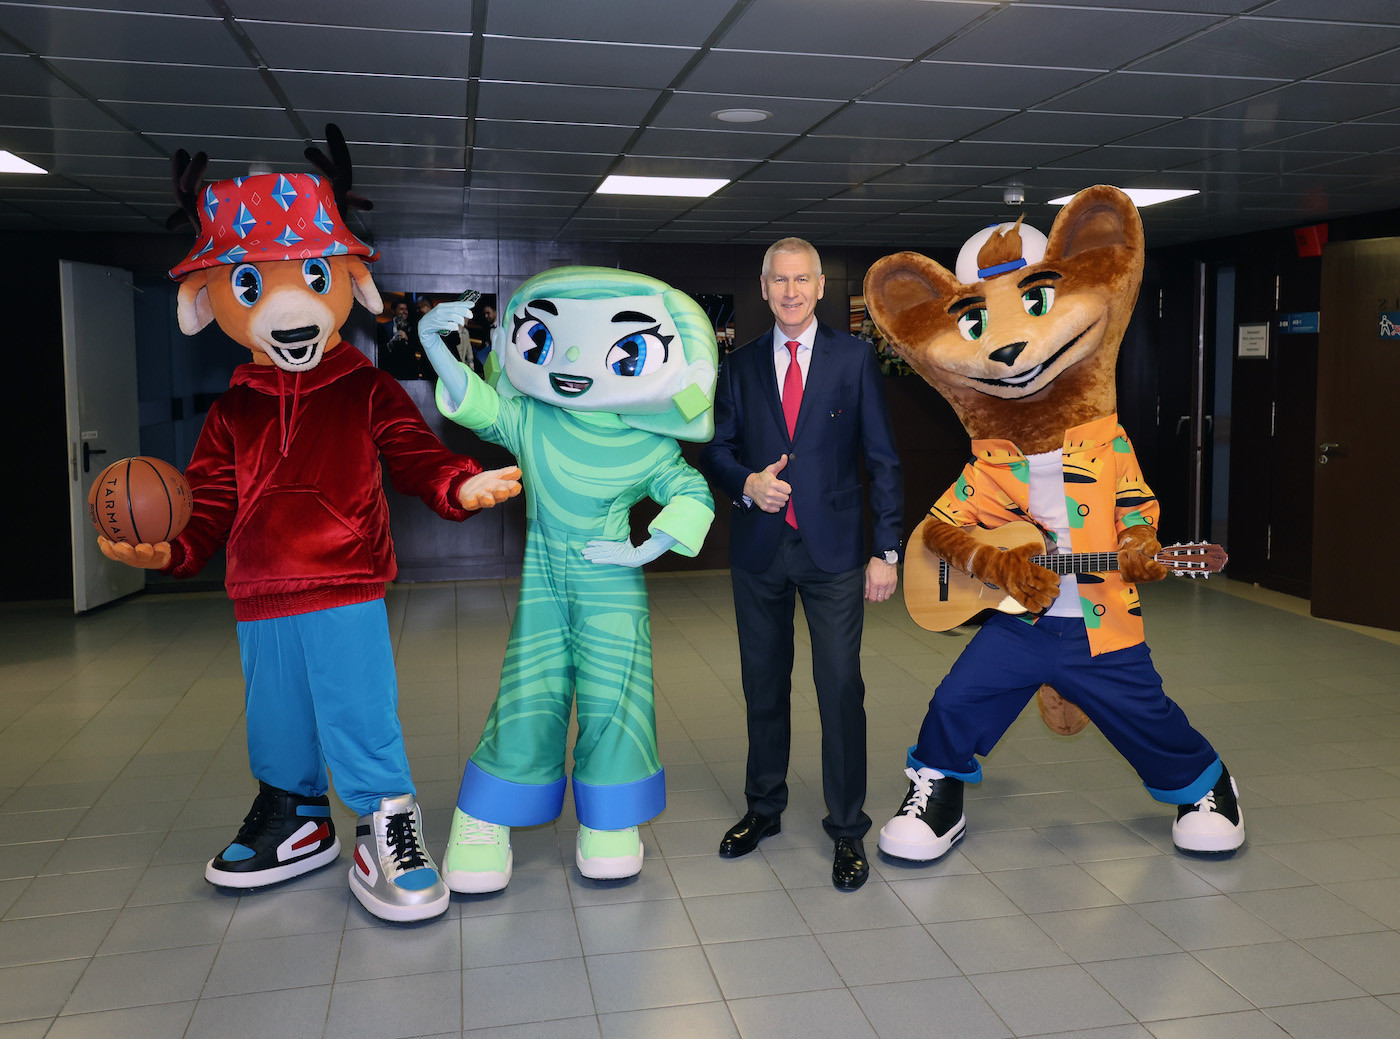 Yaggy, Heaty and Cedry unveiled as mascots for Yekaterinburg 2023